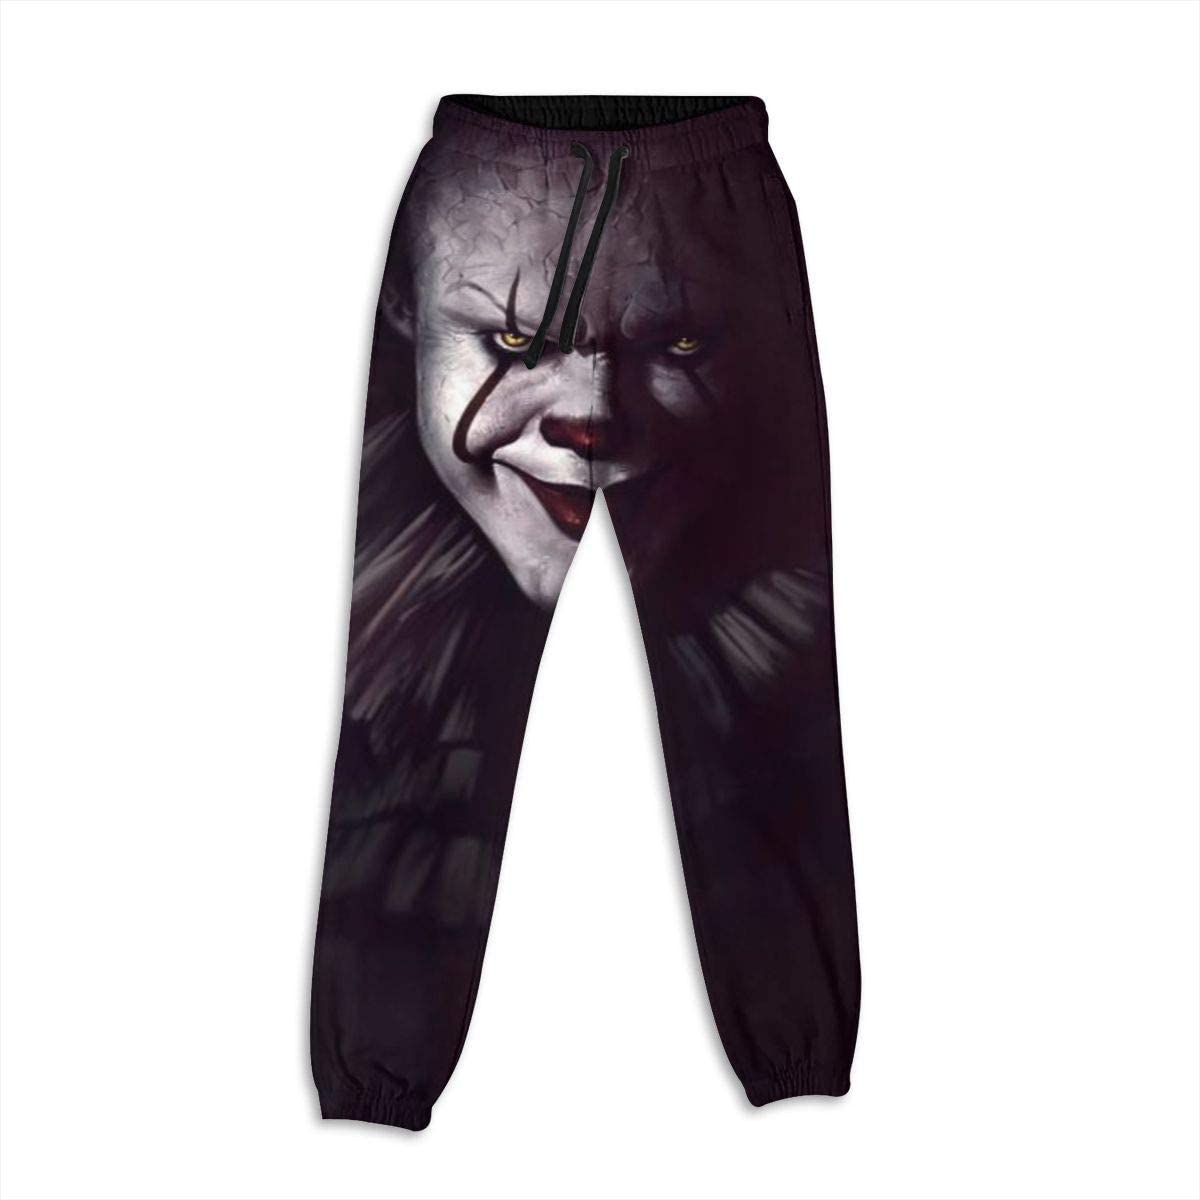 Hzzzzz It Pennywise Womens Active Sweatpants Workout Joggers Drawstring Sweat Pants with Pocke